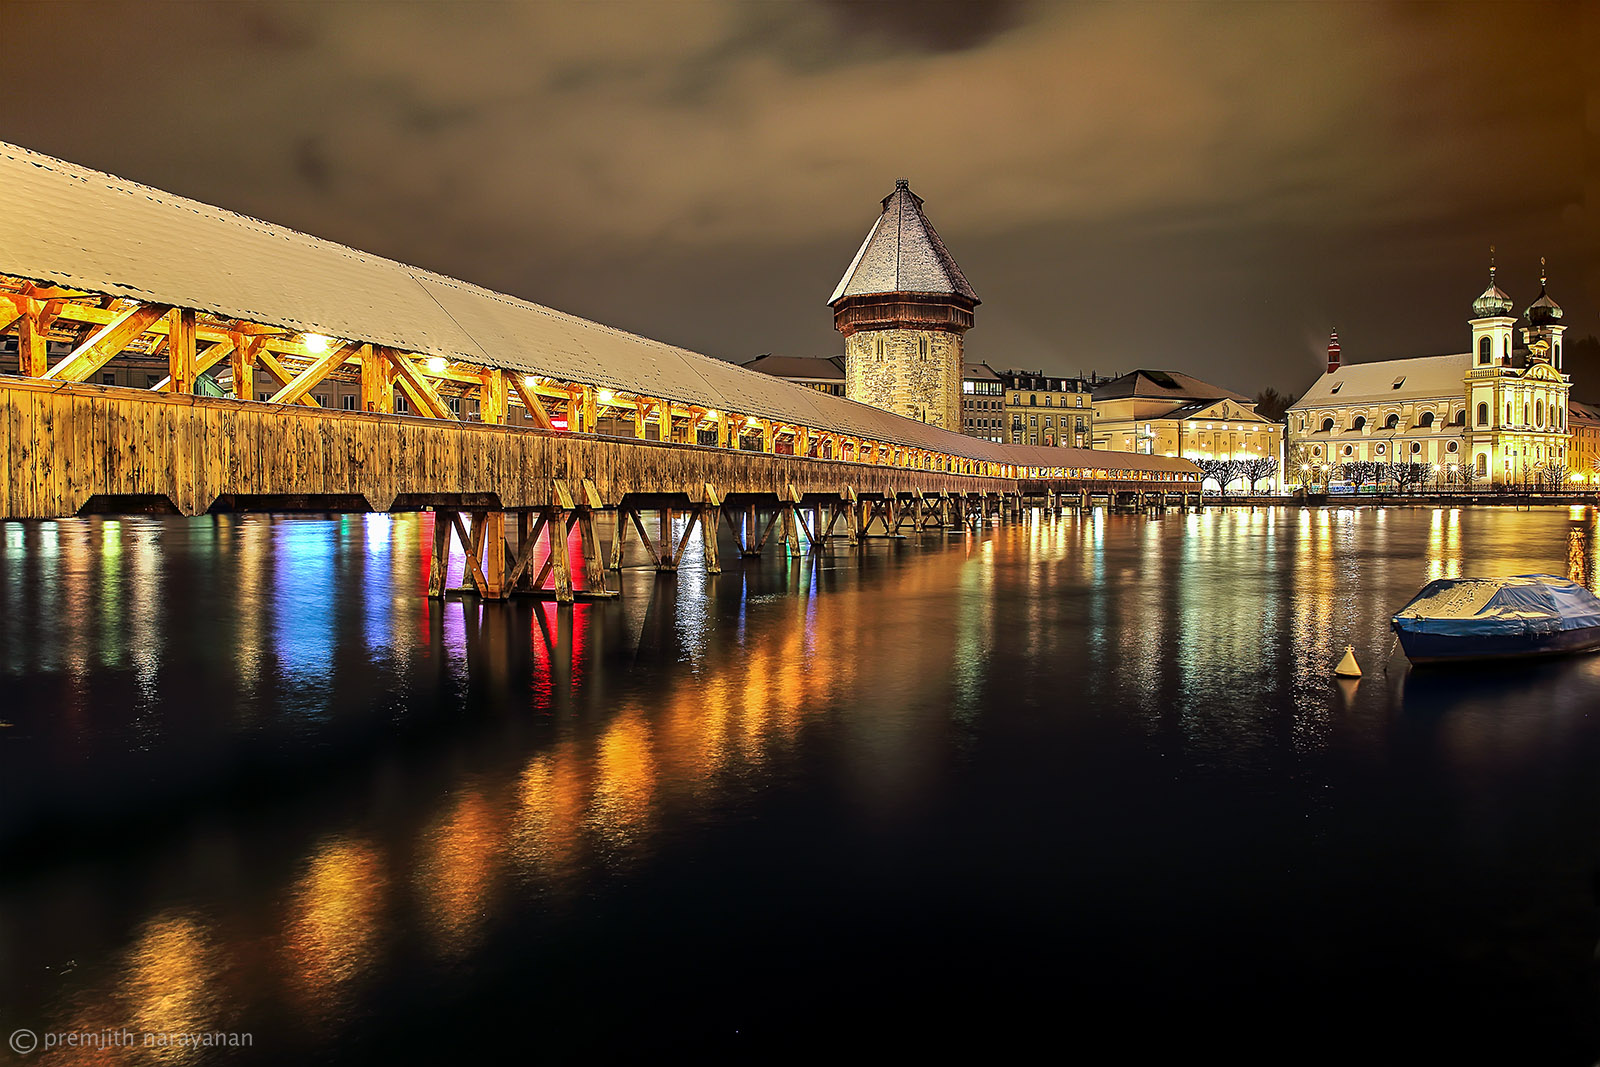 CHAPEL BRIDGE, Luzern